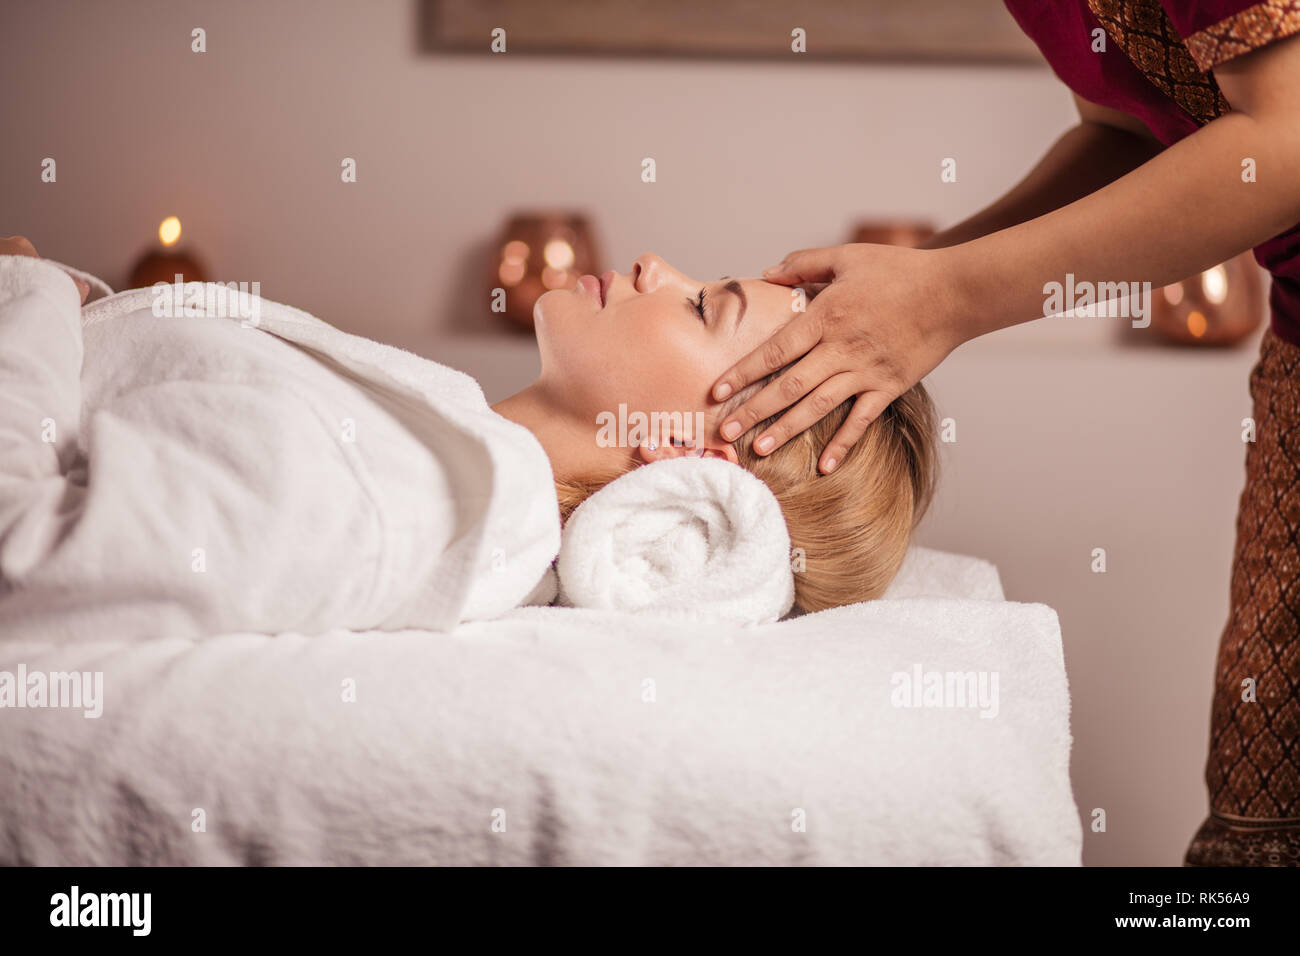 calm beautiful fair-haired woman getting facial massage, medicine treatmnet. reducing stress, weekend, holiday - Stock Image